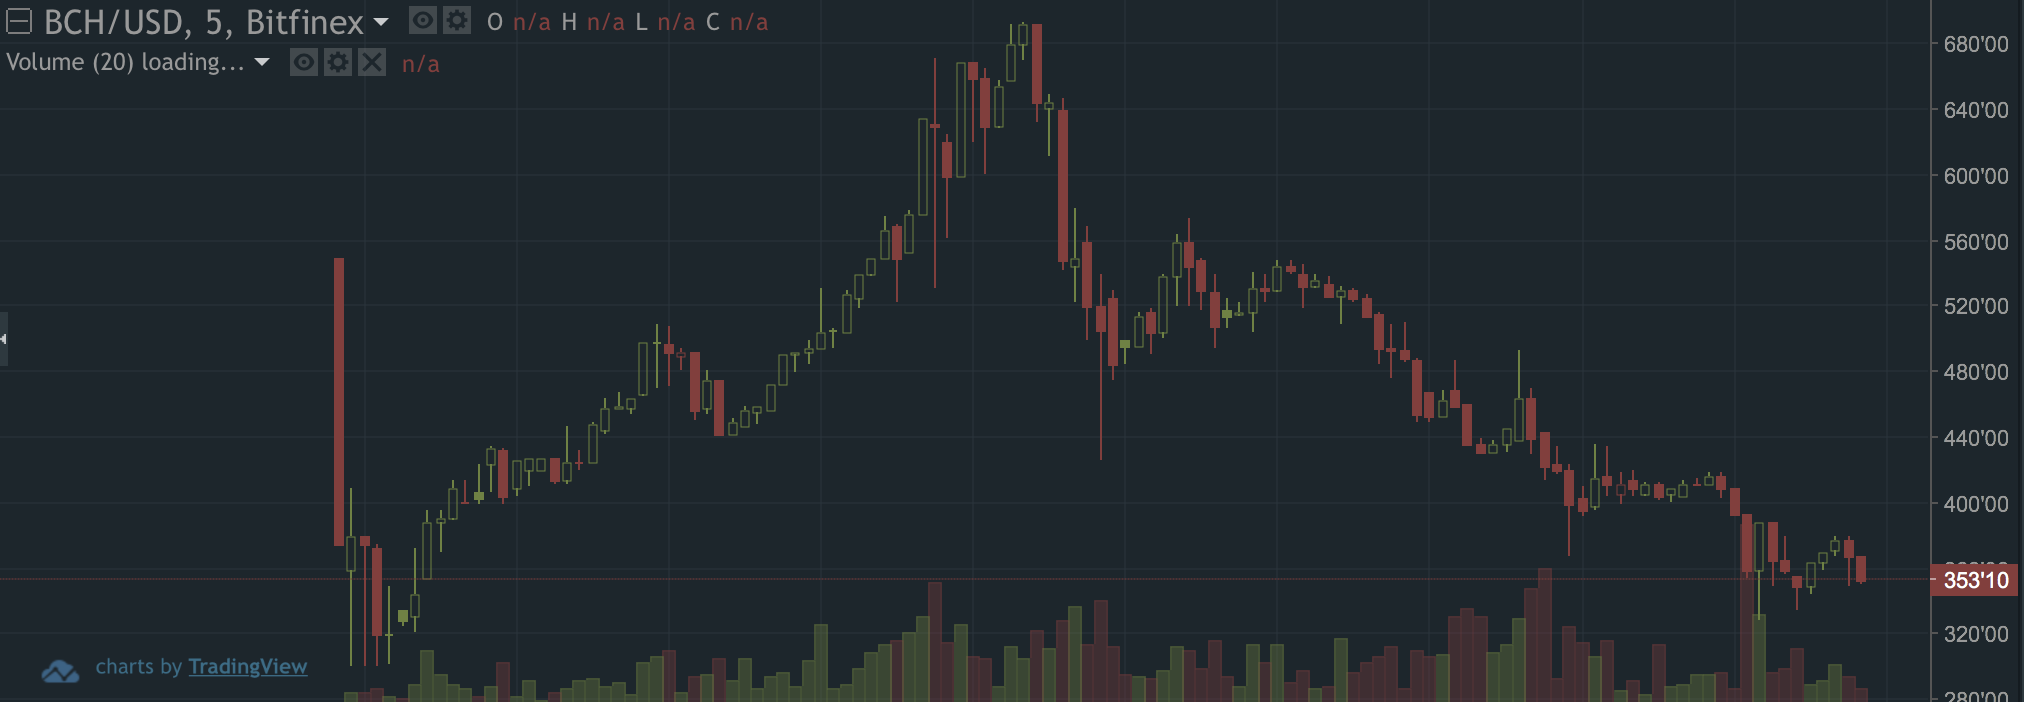 It's already down from a high of $680 to around $350 on Bitfinex, one  exchange that is offering a market for the new currency.